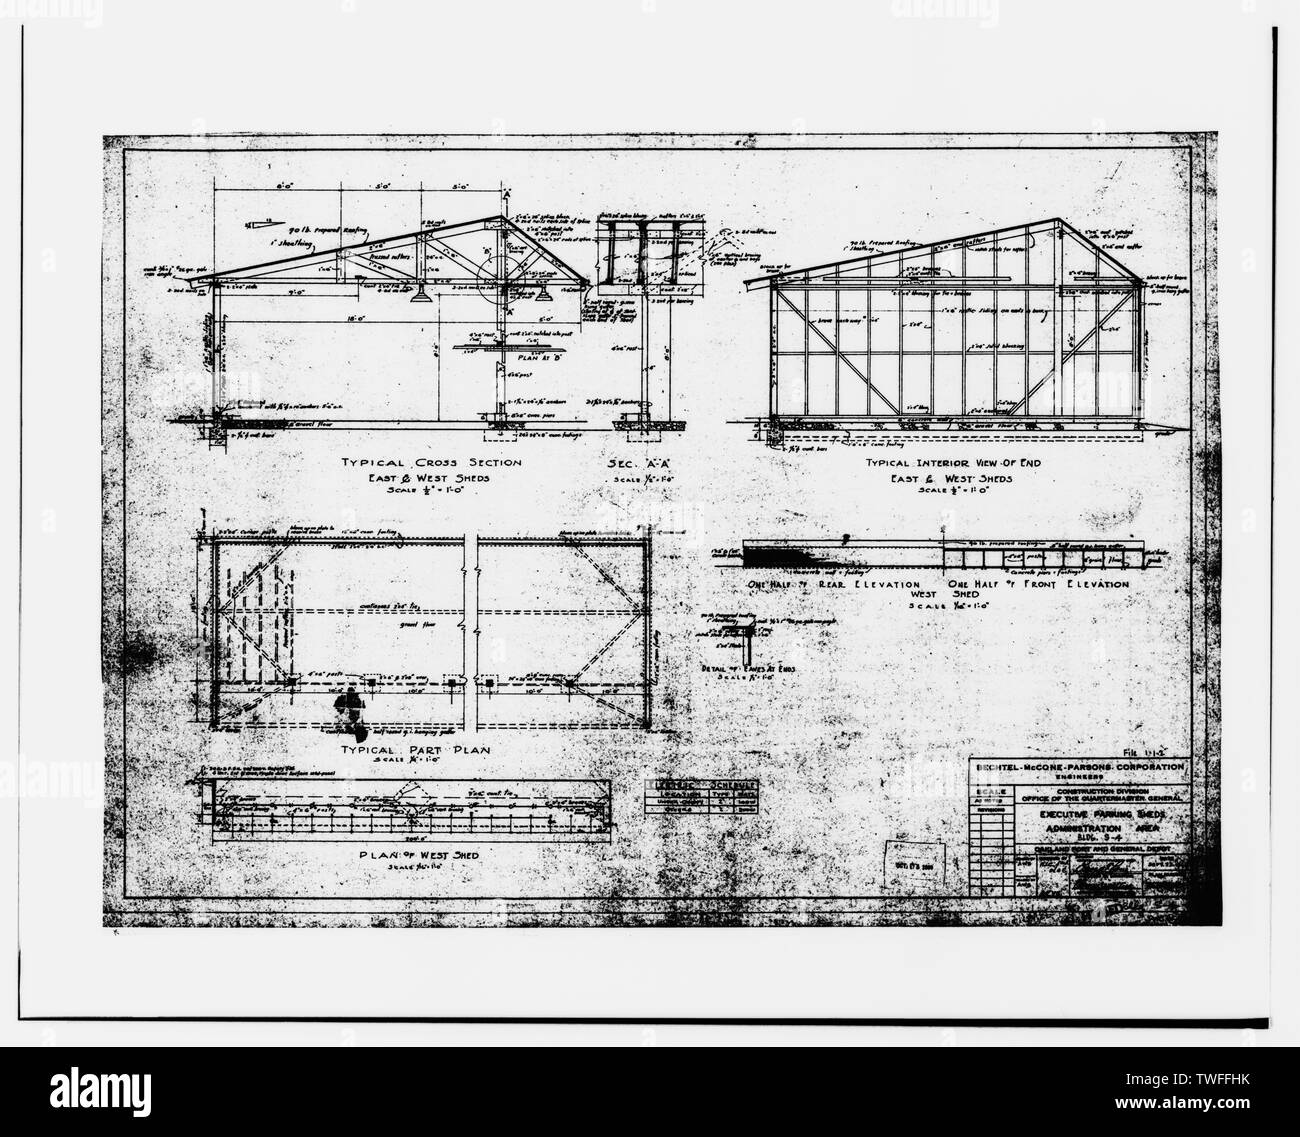 PLAN, ELEVATIONS, SECTIONS, SHEET NO. 7052-106.110 OF 1. - Oakland Army Base, Private Vehicle Inspection Building, Africa Street and Bataan Avenue, Oakland, Alameda County, CA - Stock Image